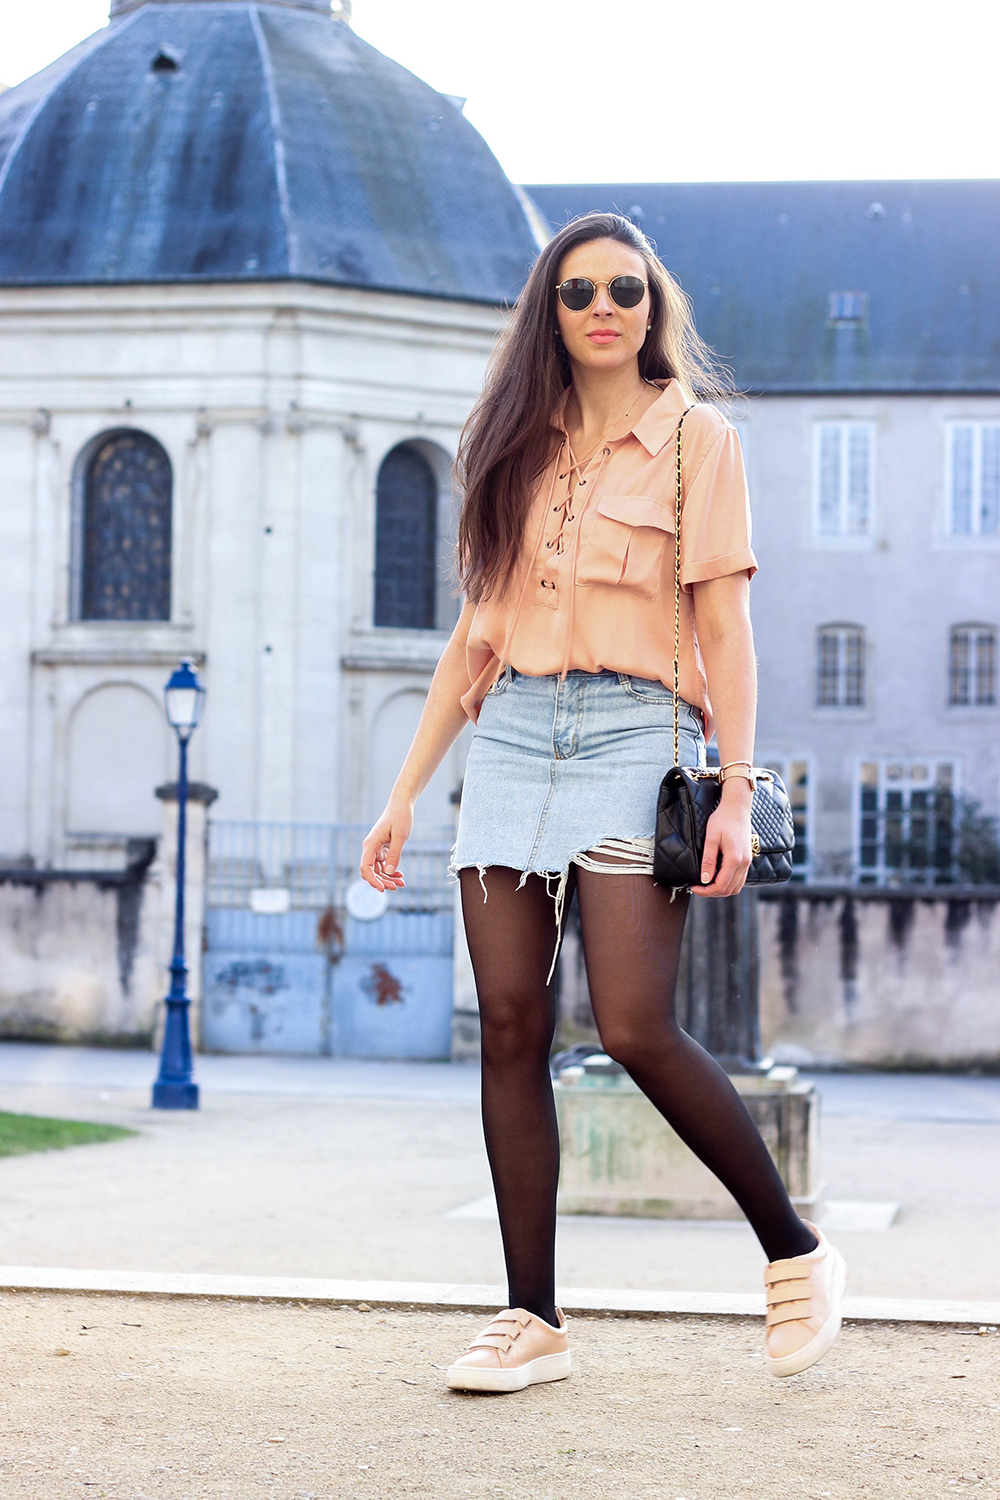 Street Style Legwear Looks Fashionmylegs The Tights And Hosiery